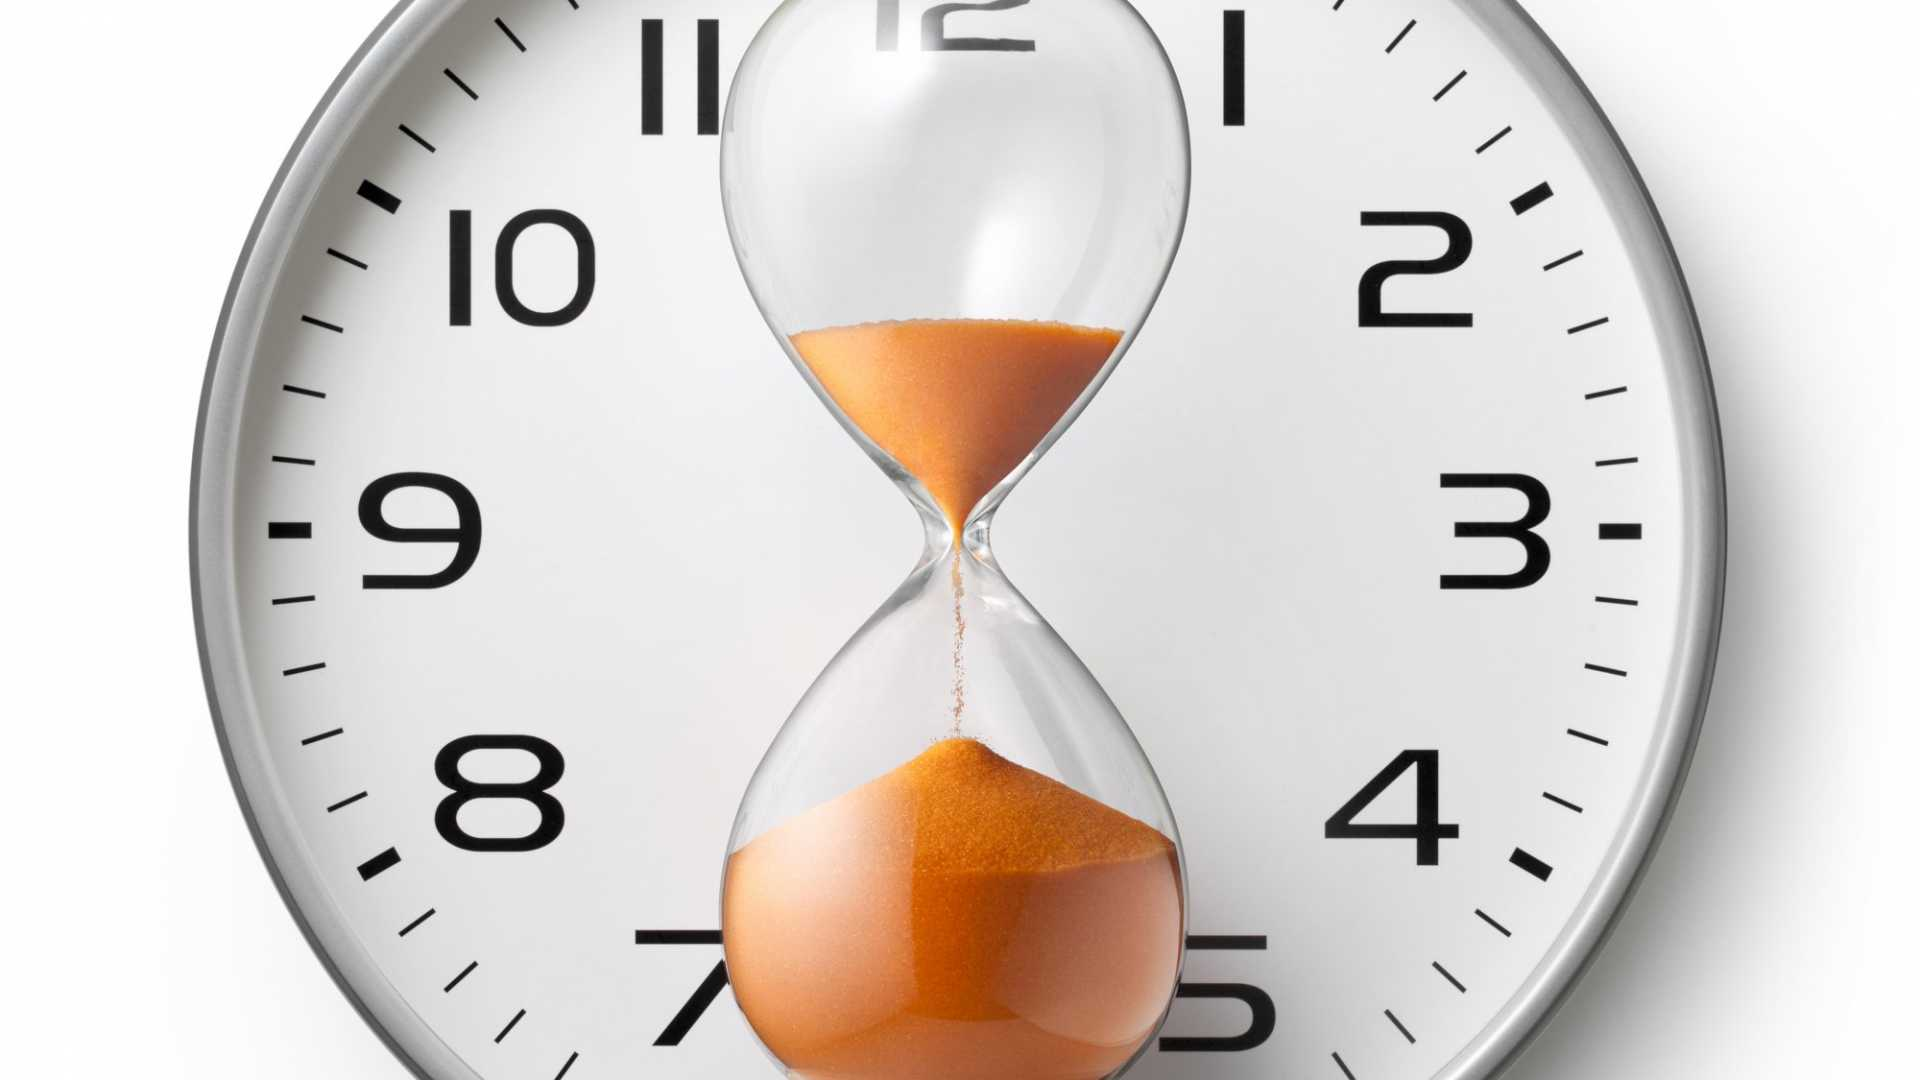 The power of the egg timer as a productivity tool